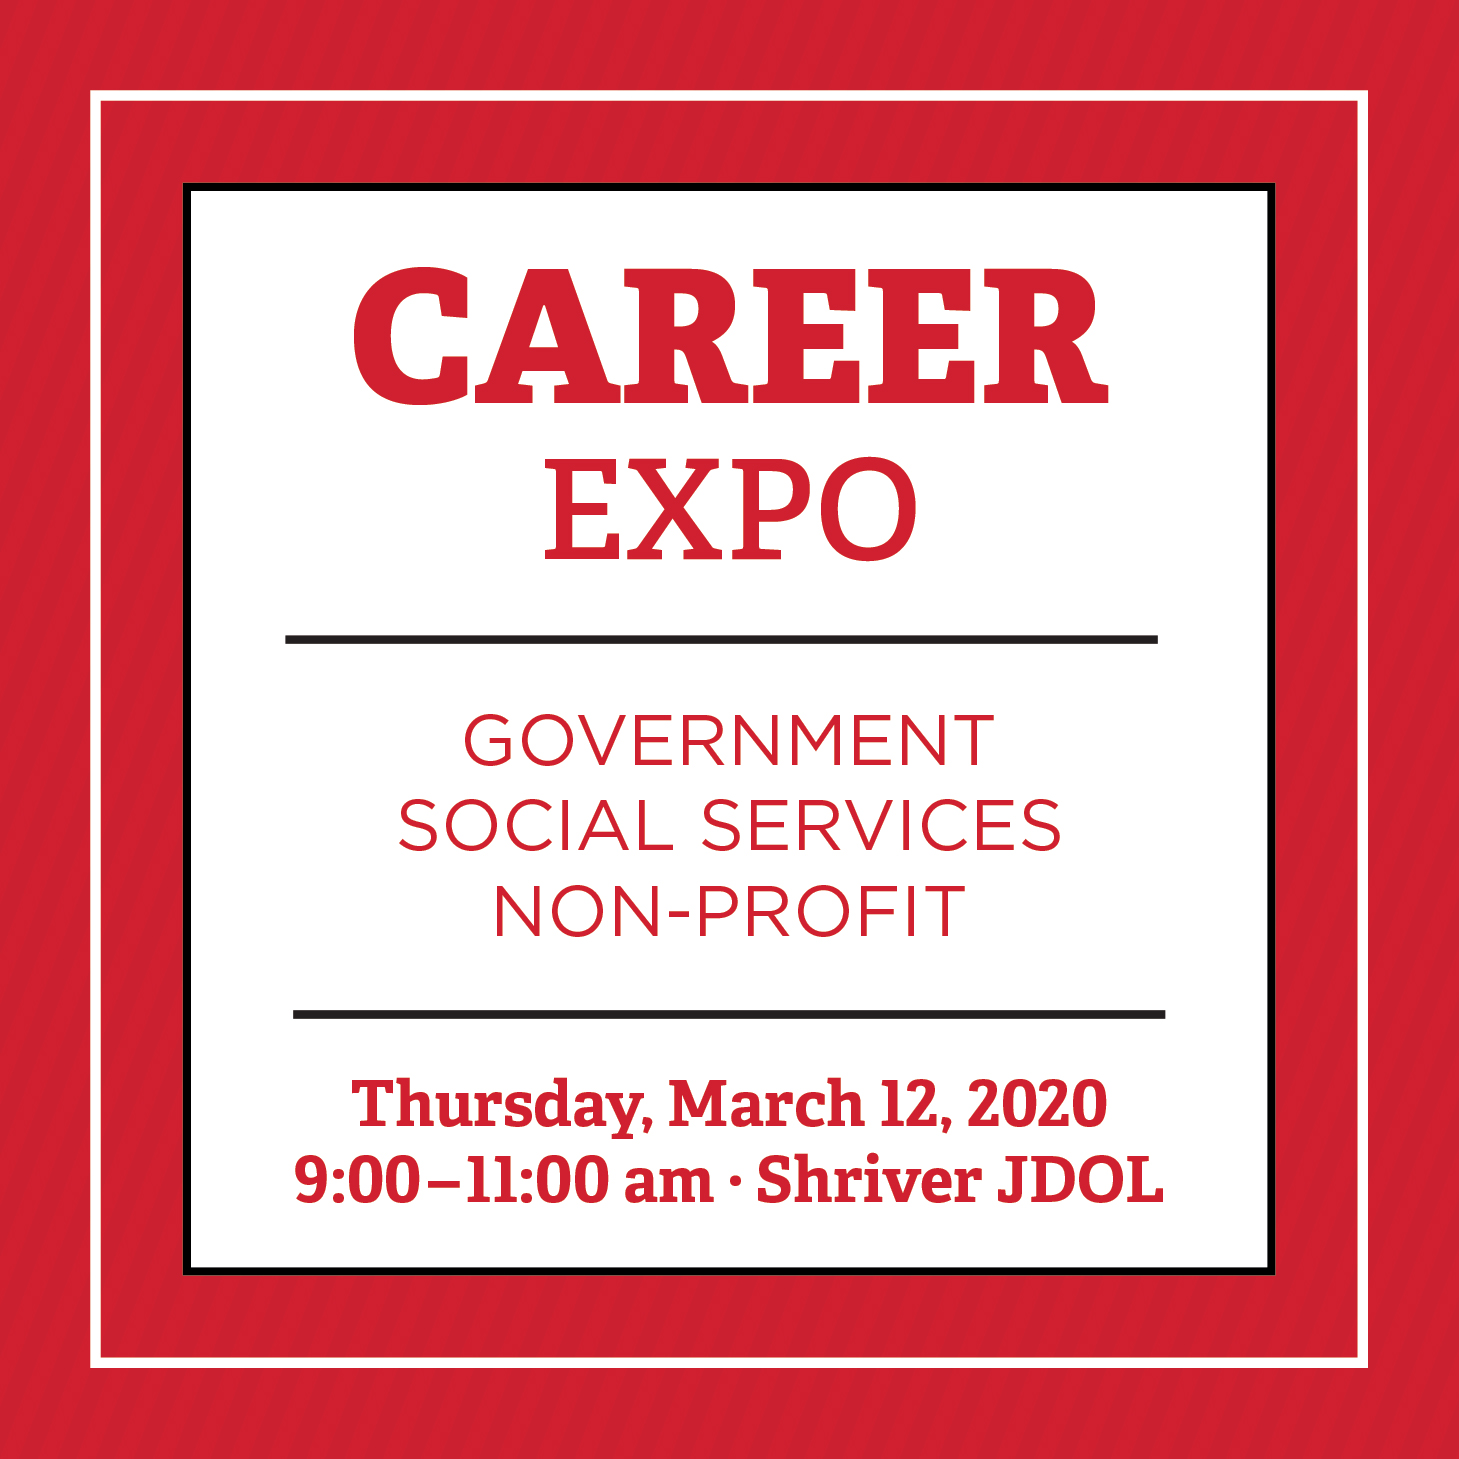 Government, Social Services and NonProfit Career Expo